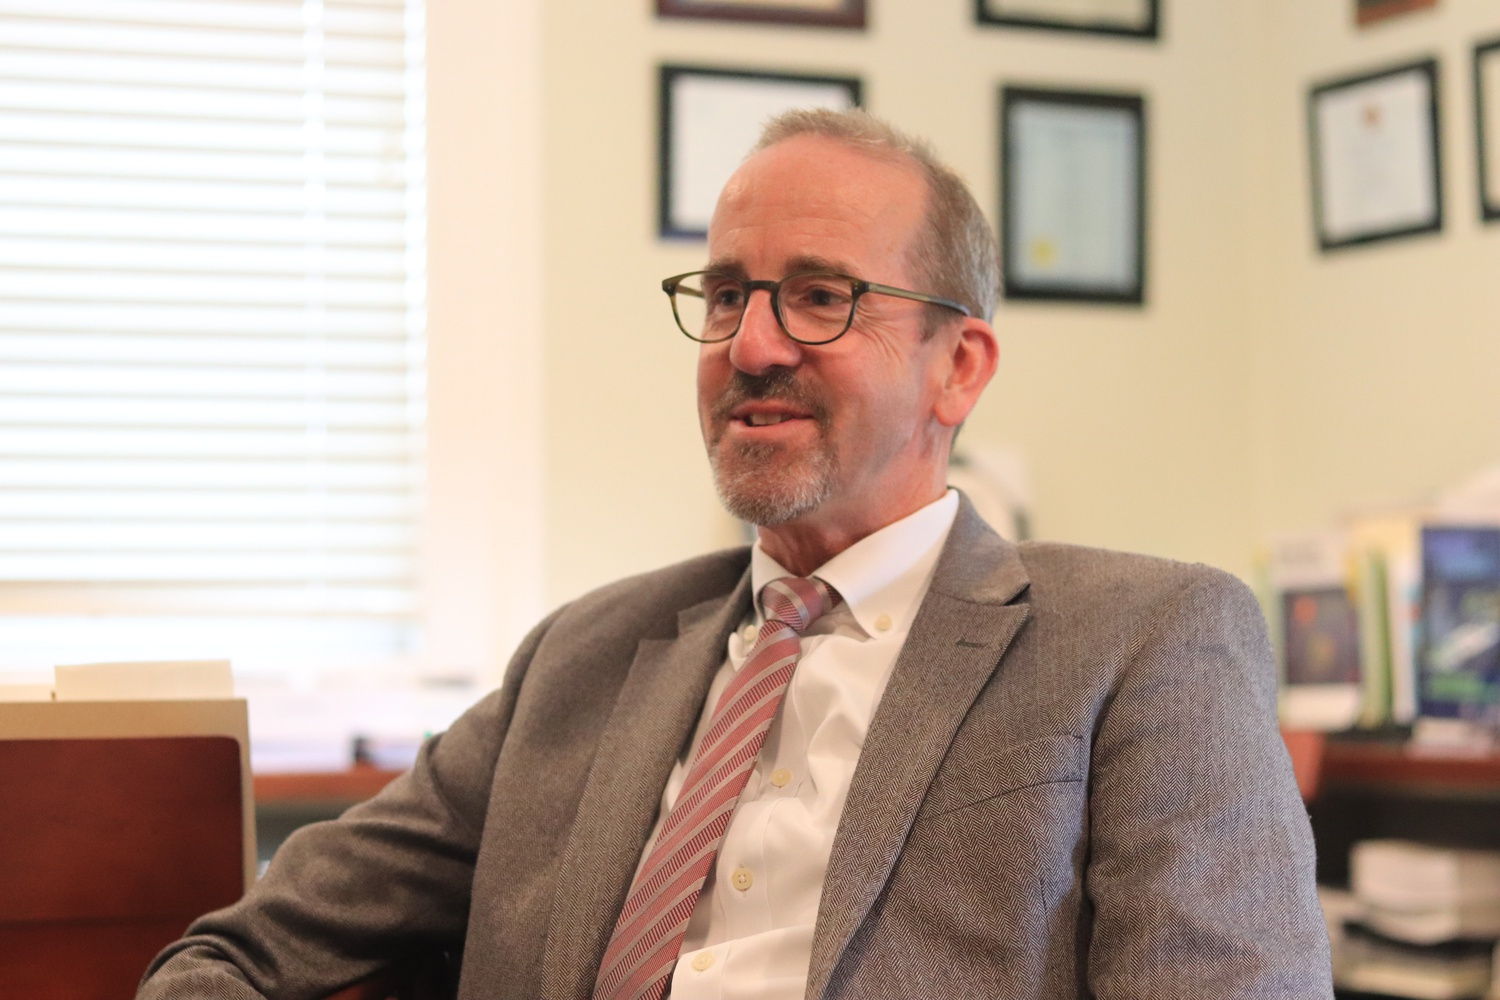 School of Engineering and Applied Sciences Dean Francis J. Doyle III said in a Thursday interview that the school has made great progress in implementing its diversity plan.